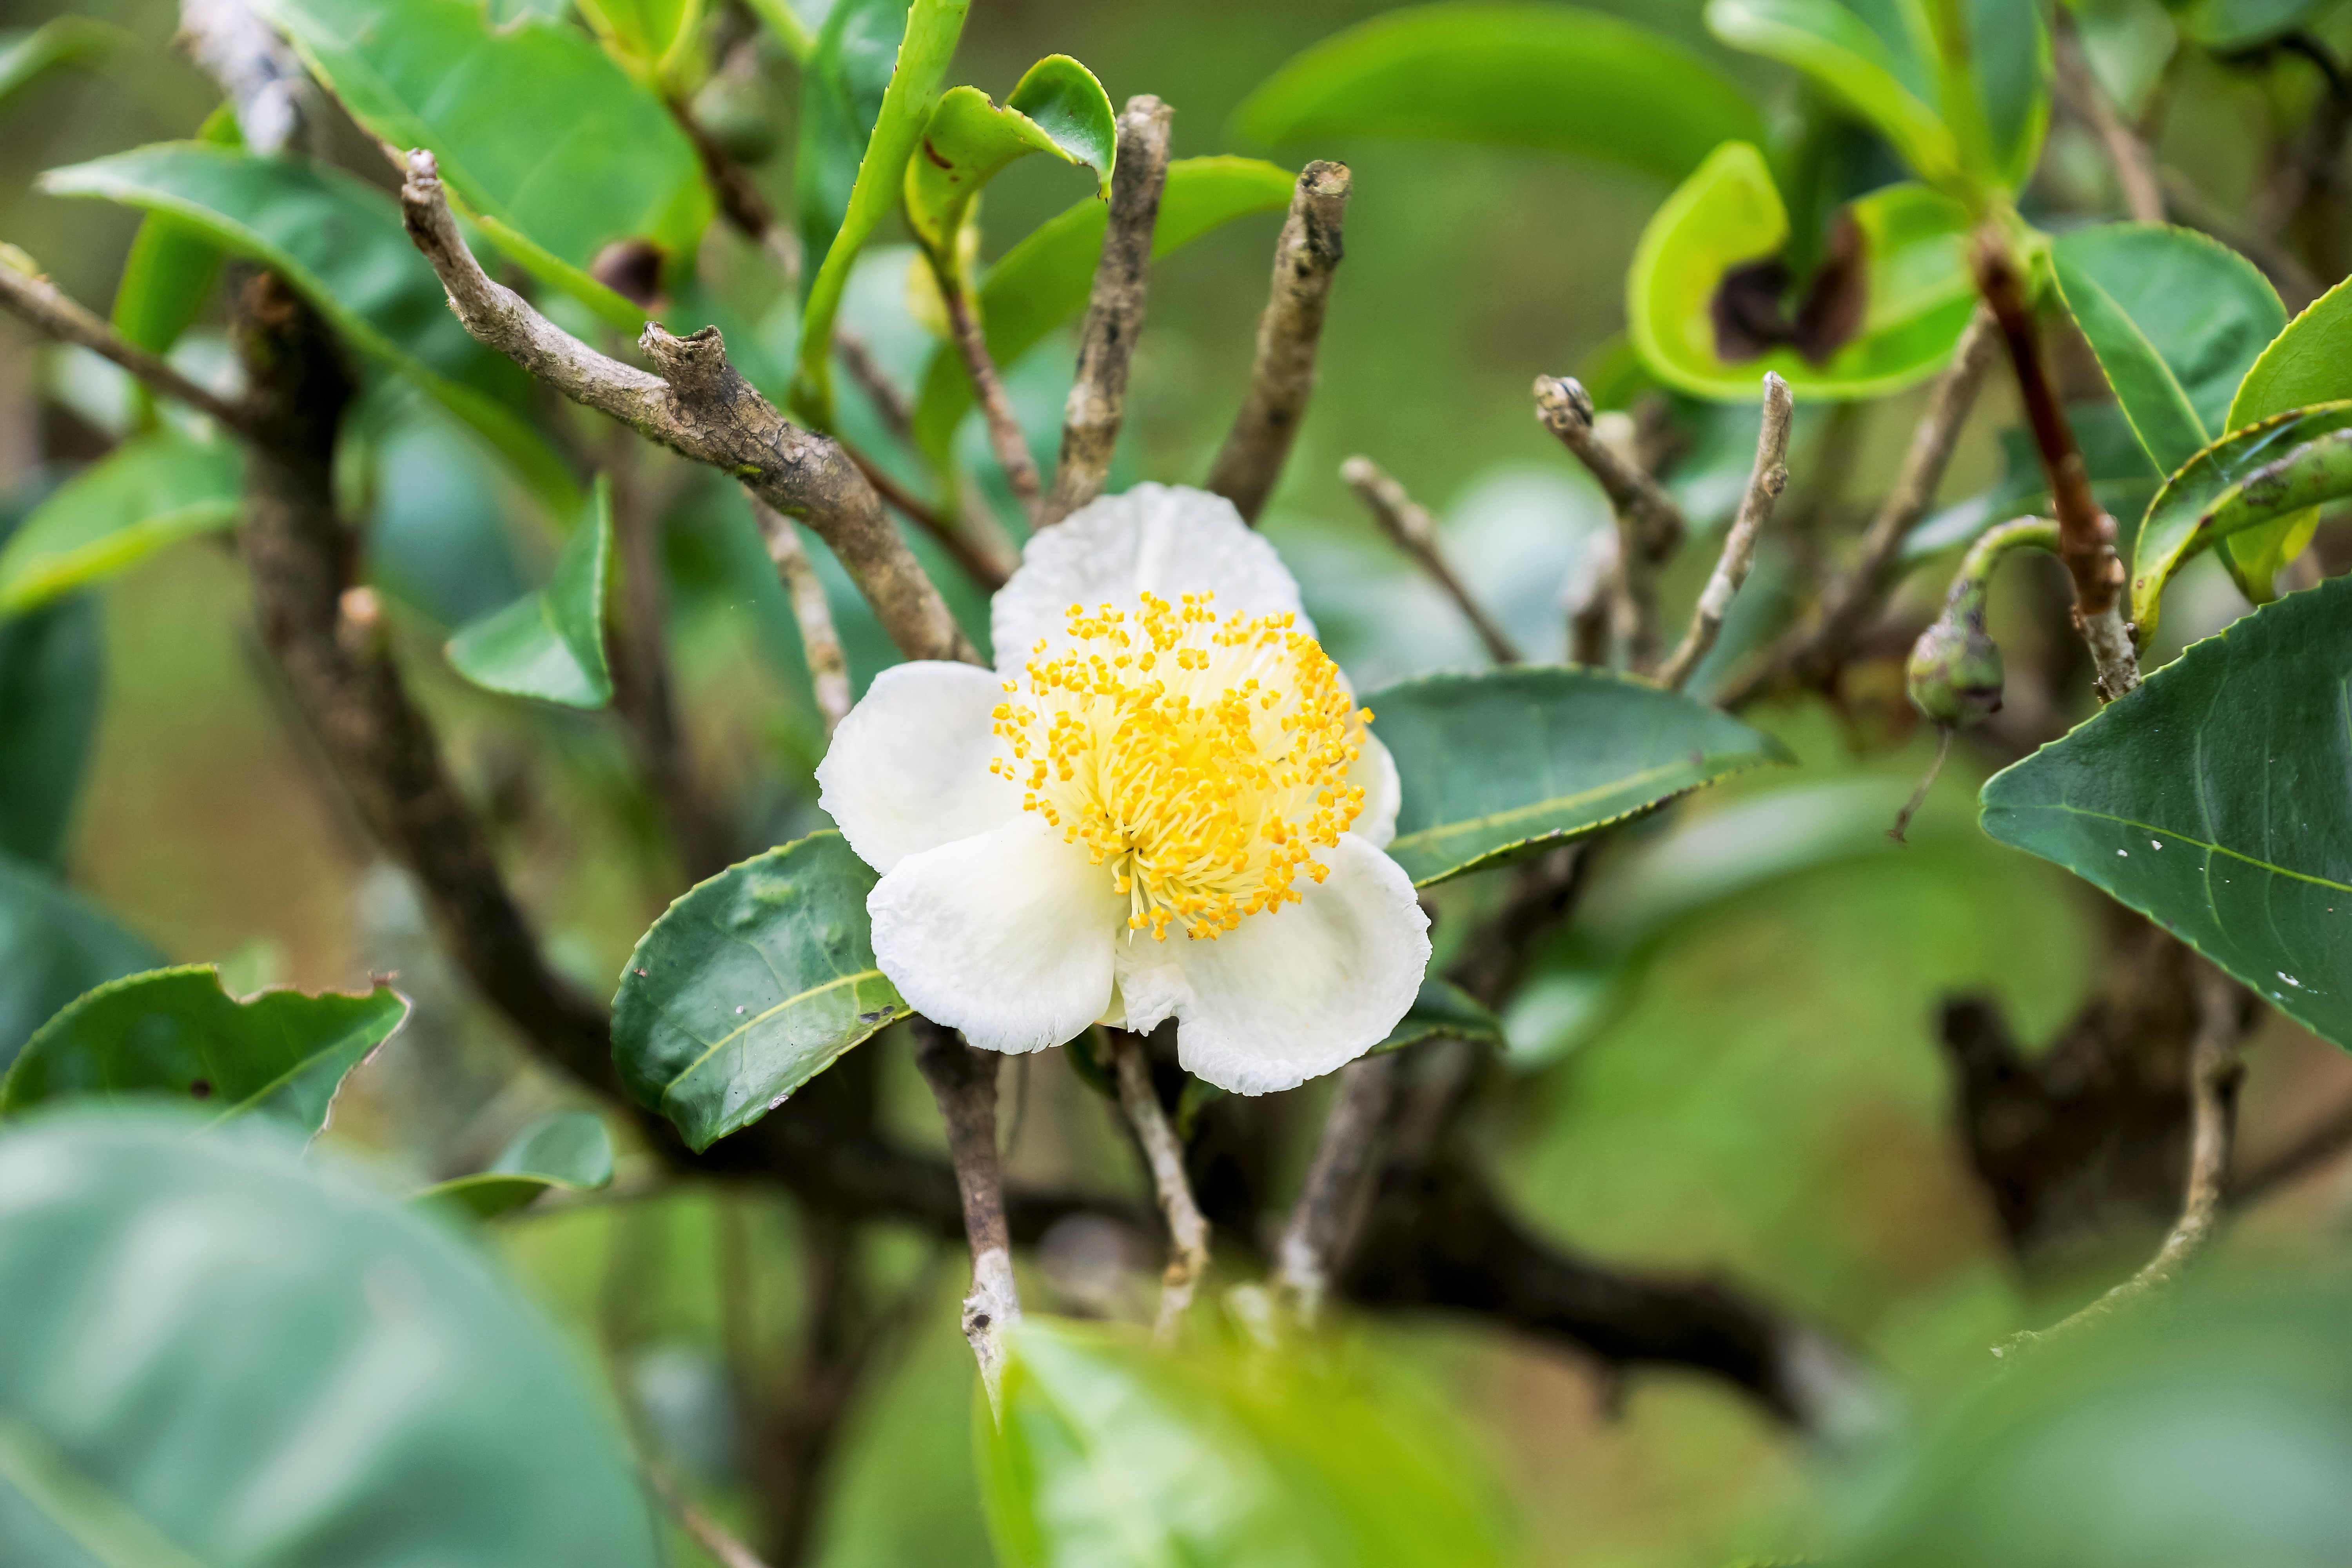 Defense-Related Proteins and Camellia Sinensis Pollen